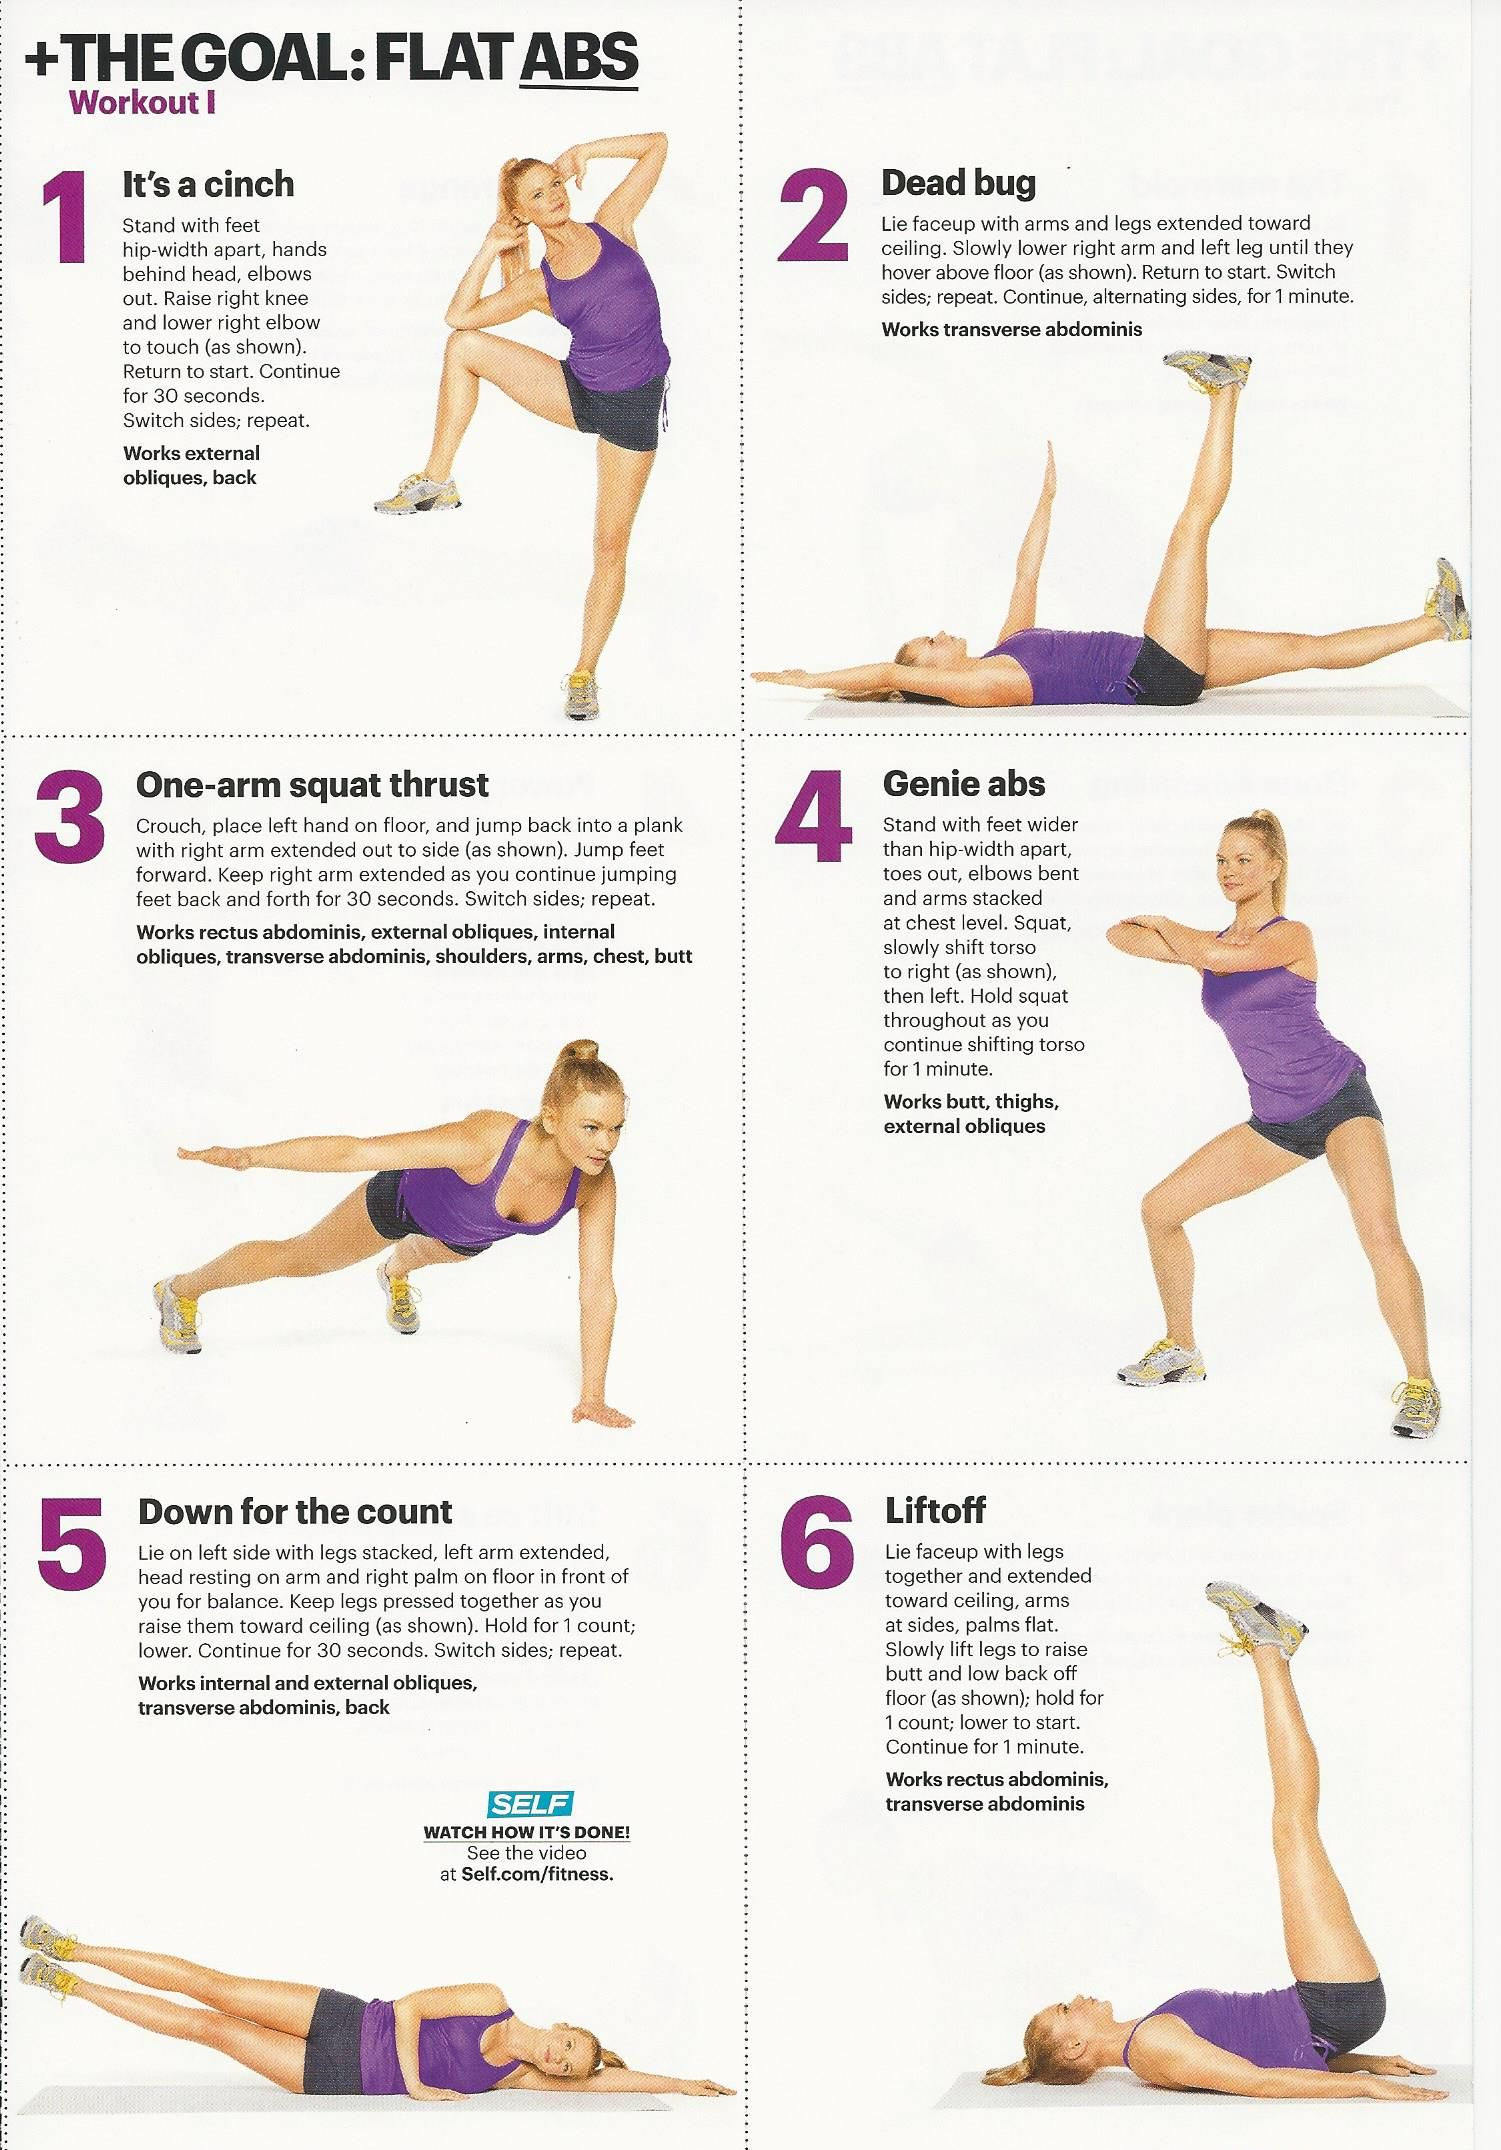 Your Crunch Less Guide To Flat Abs Myfitnesspal Abs Workout For Women Abs Workout Six Pack Abs Workout